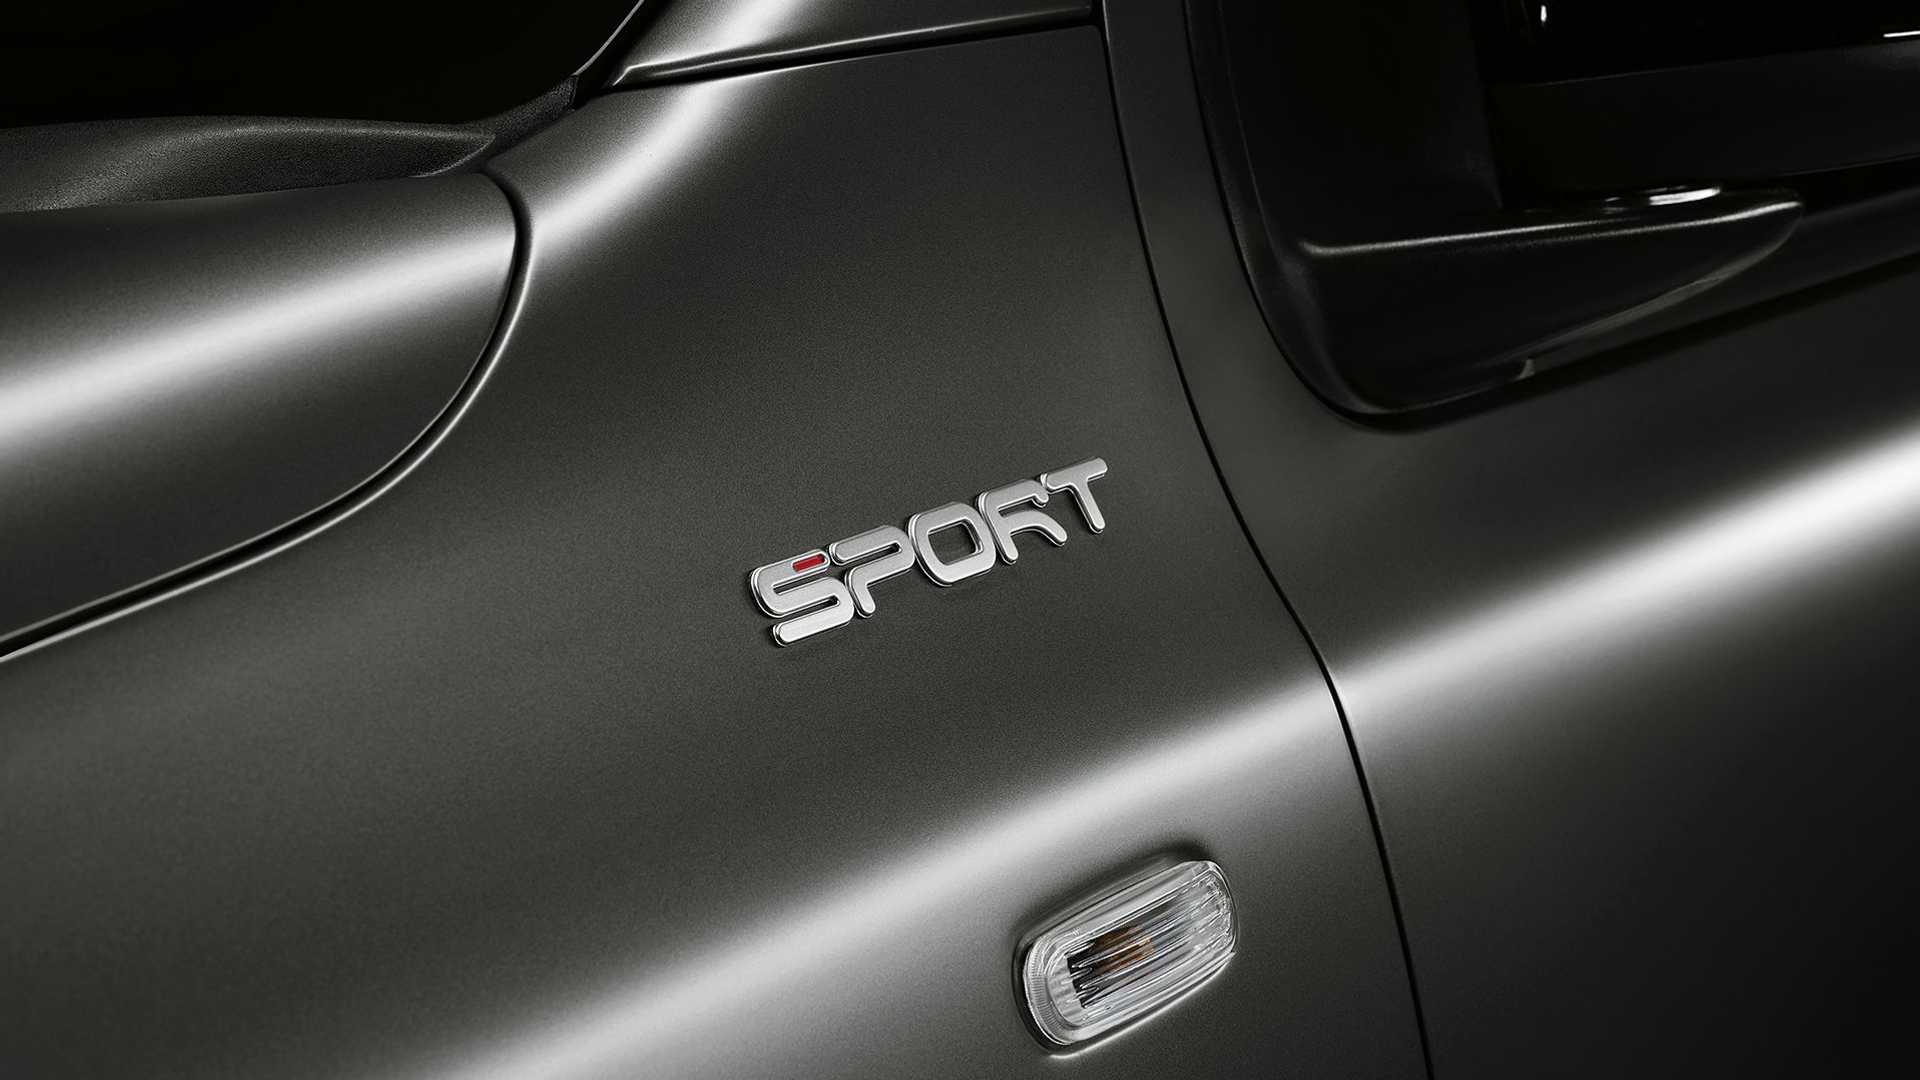 2021 Fiat Panda Revealed With Sport Version And Other Updates